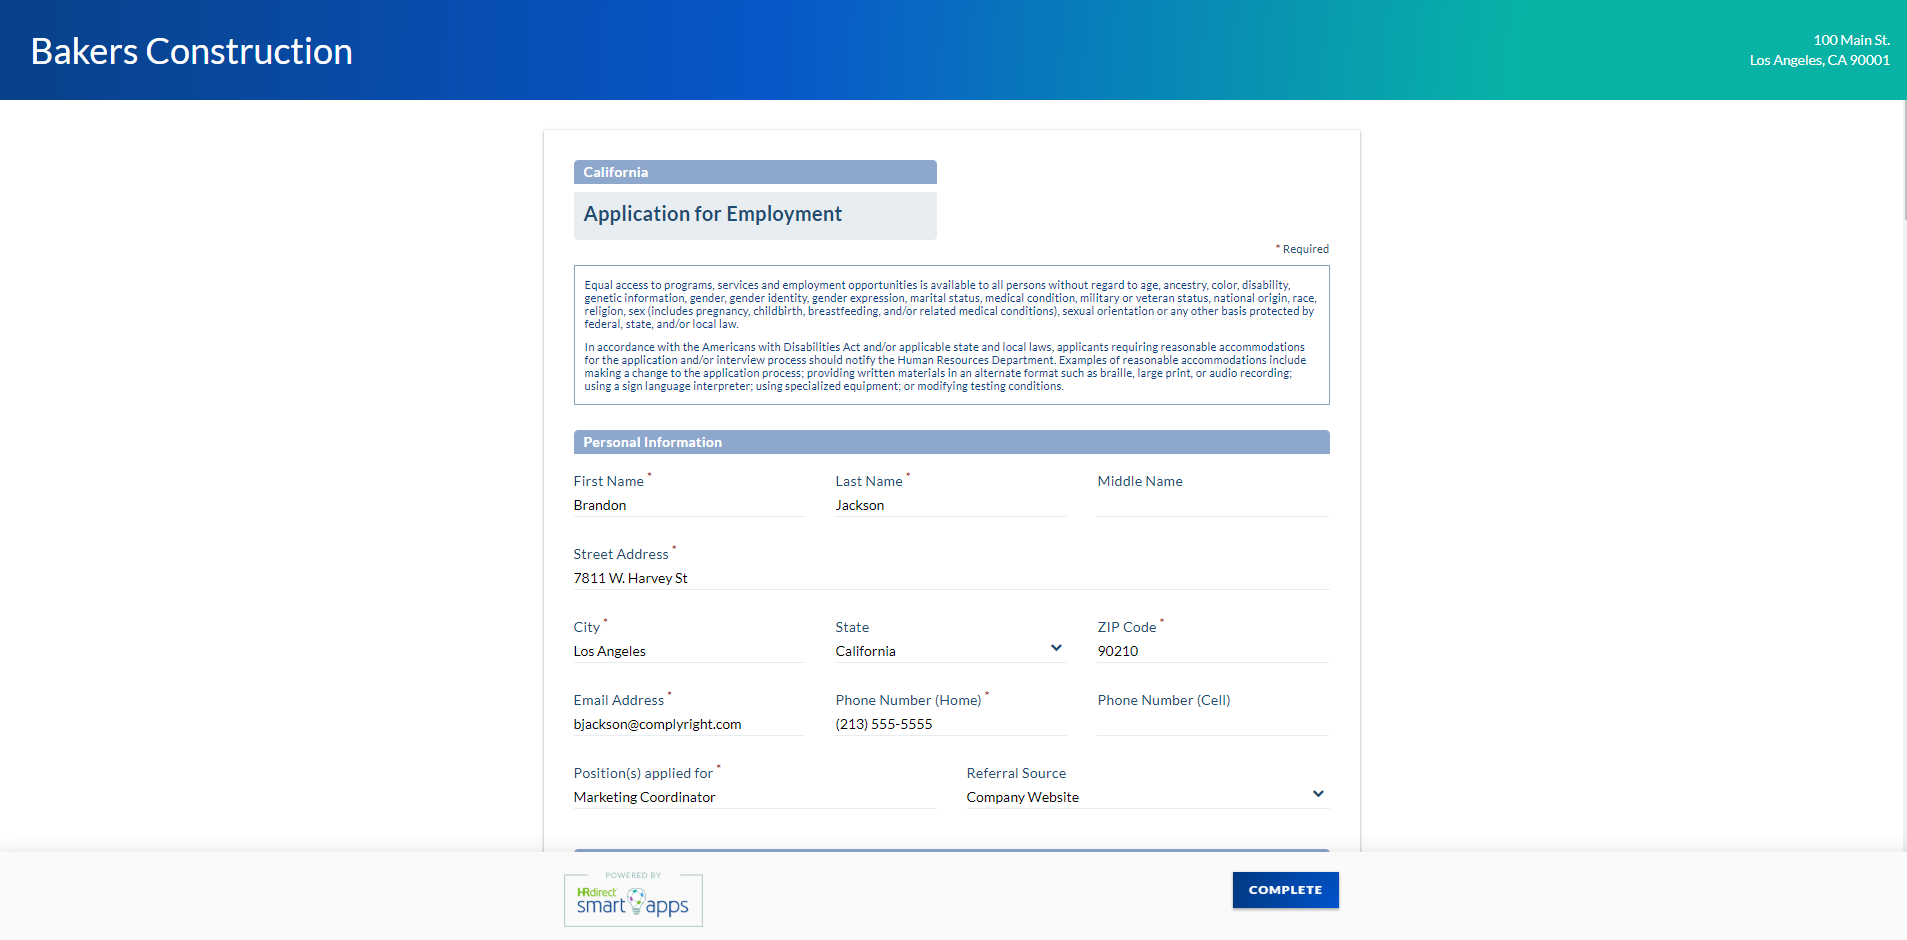 Job Application Online >> 5 Easy Steps For Creating And Managing Compliant Job Applications Online